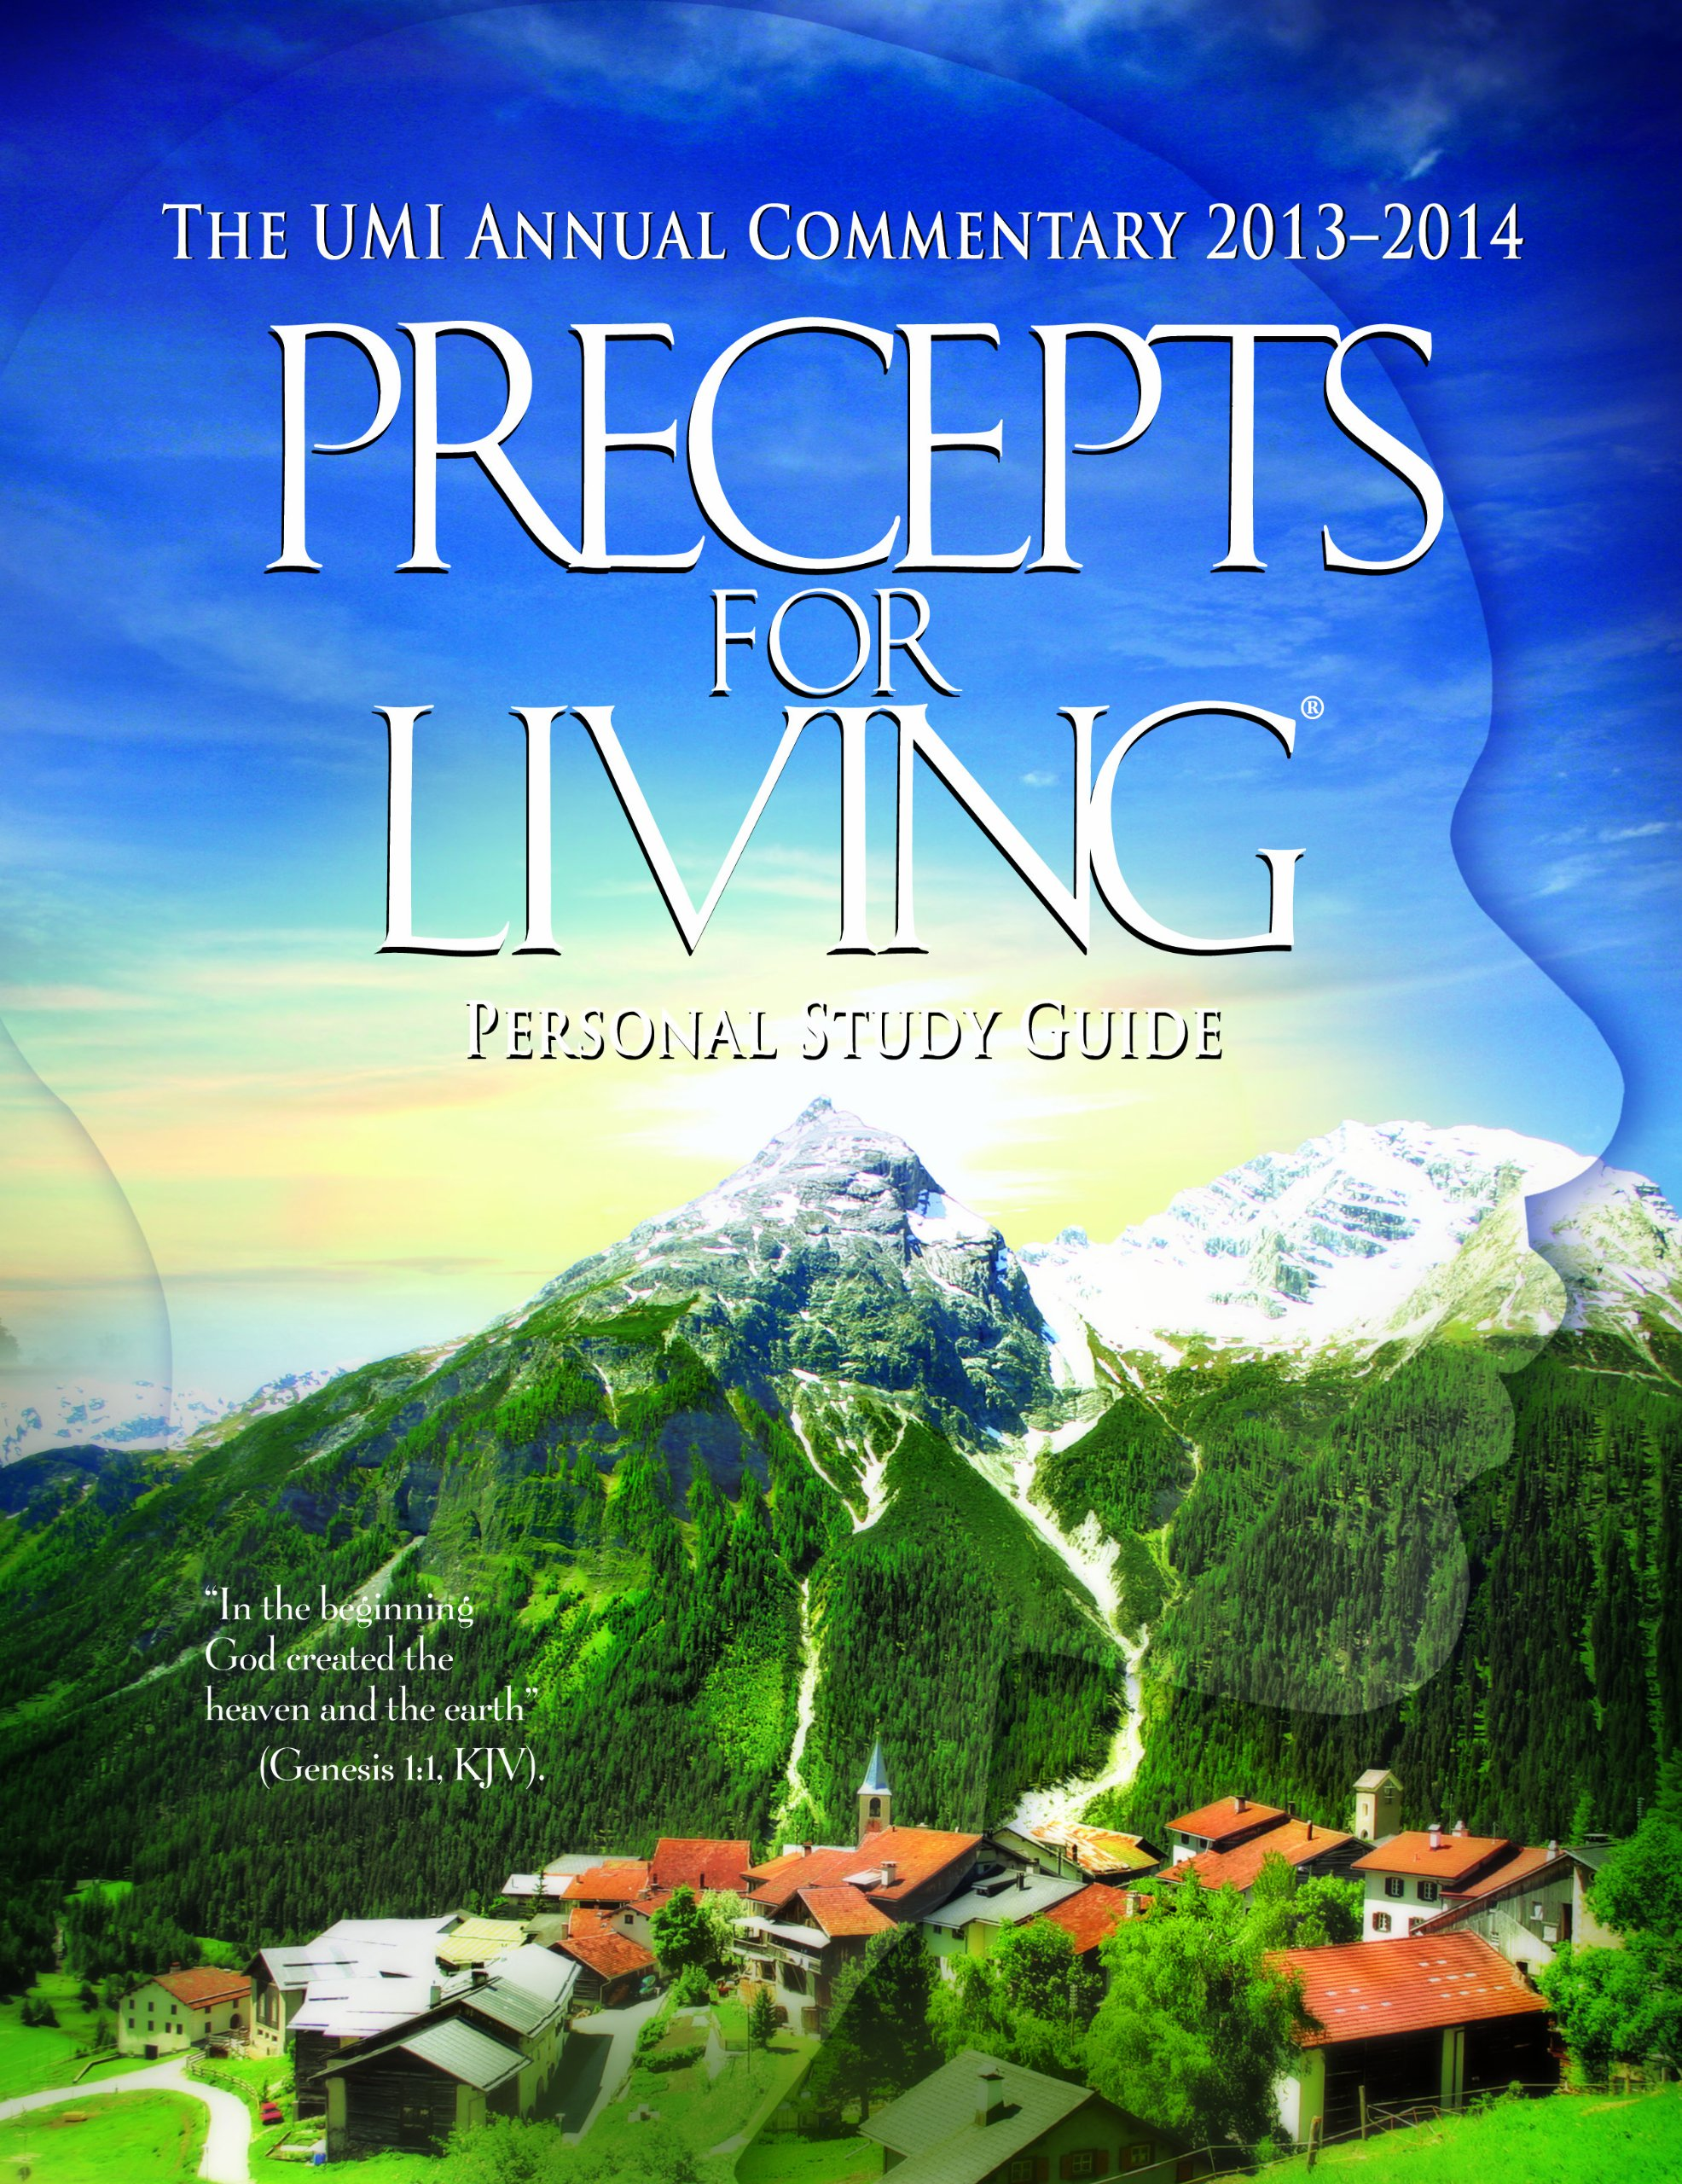 Precepts for Living 2013-2014 Personal Study Guide ebook